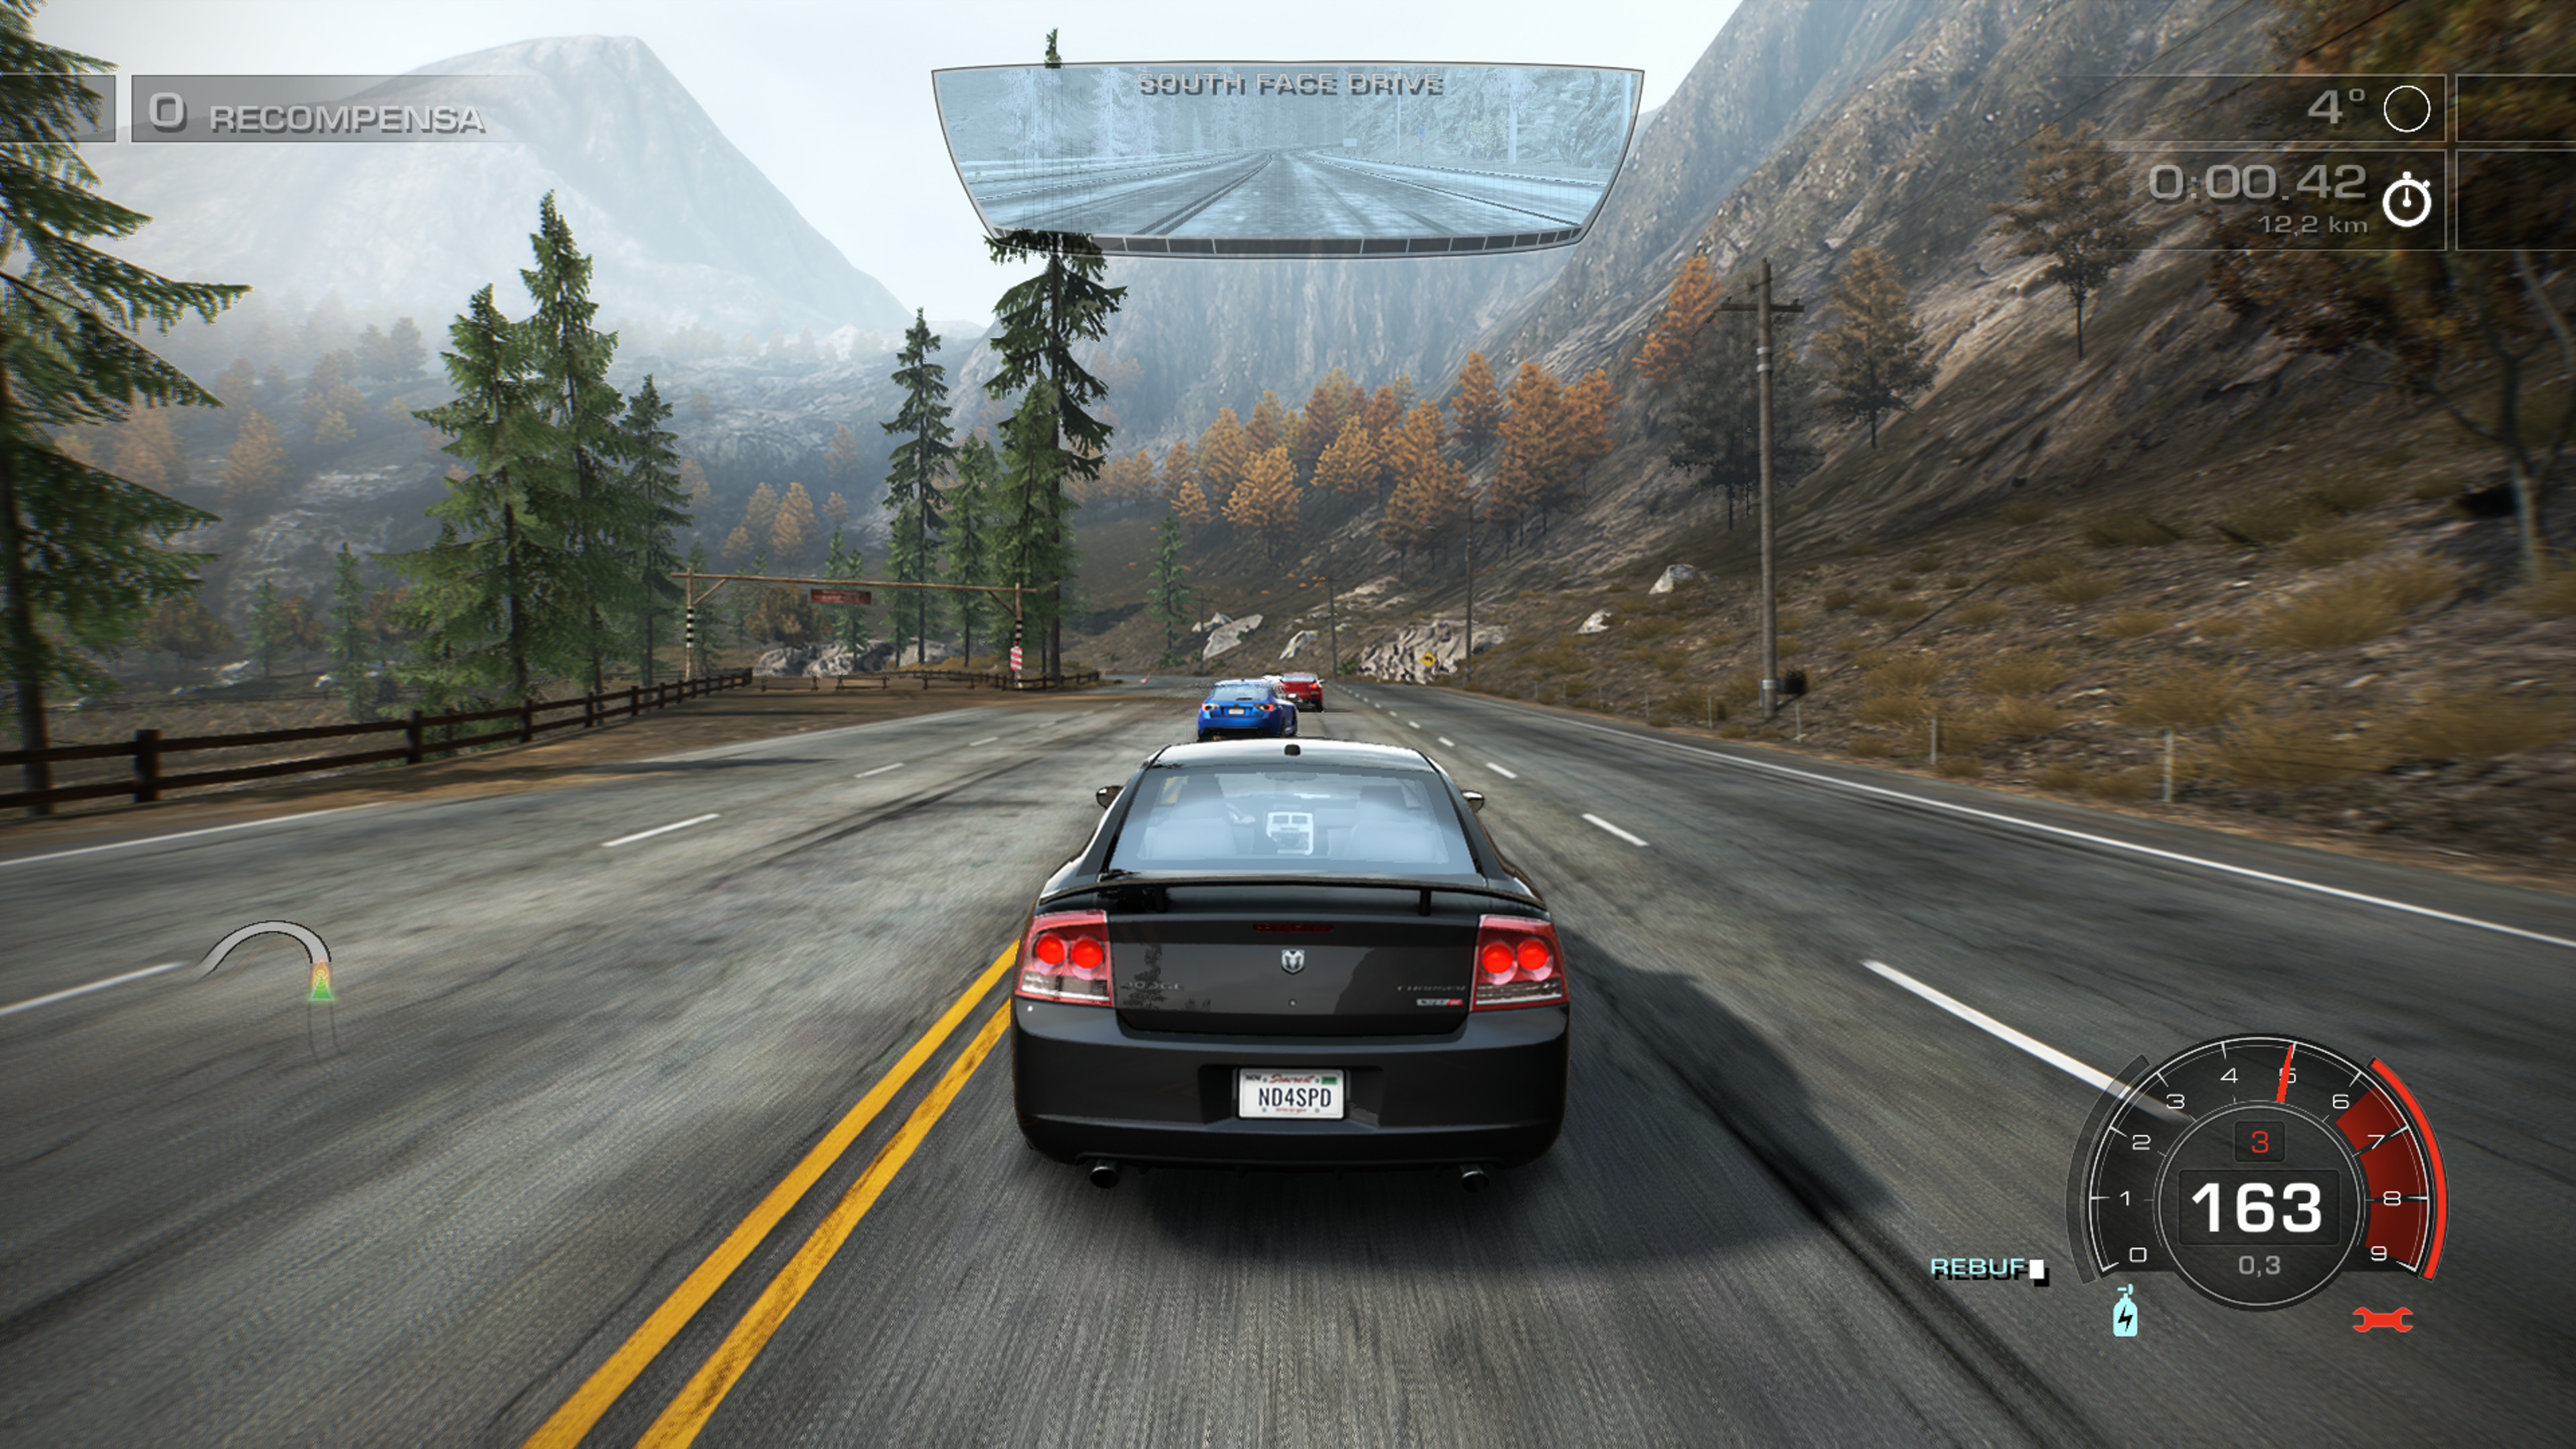 z9r0vxb5df_Need For Speed™ Hot Pursuit Remastered 2020-11-24 20-50-41.png